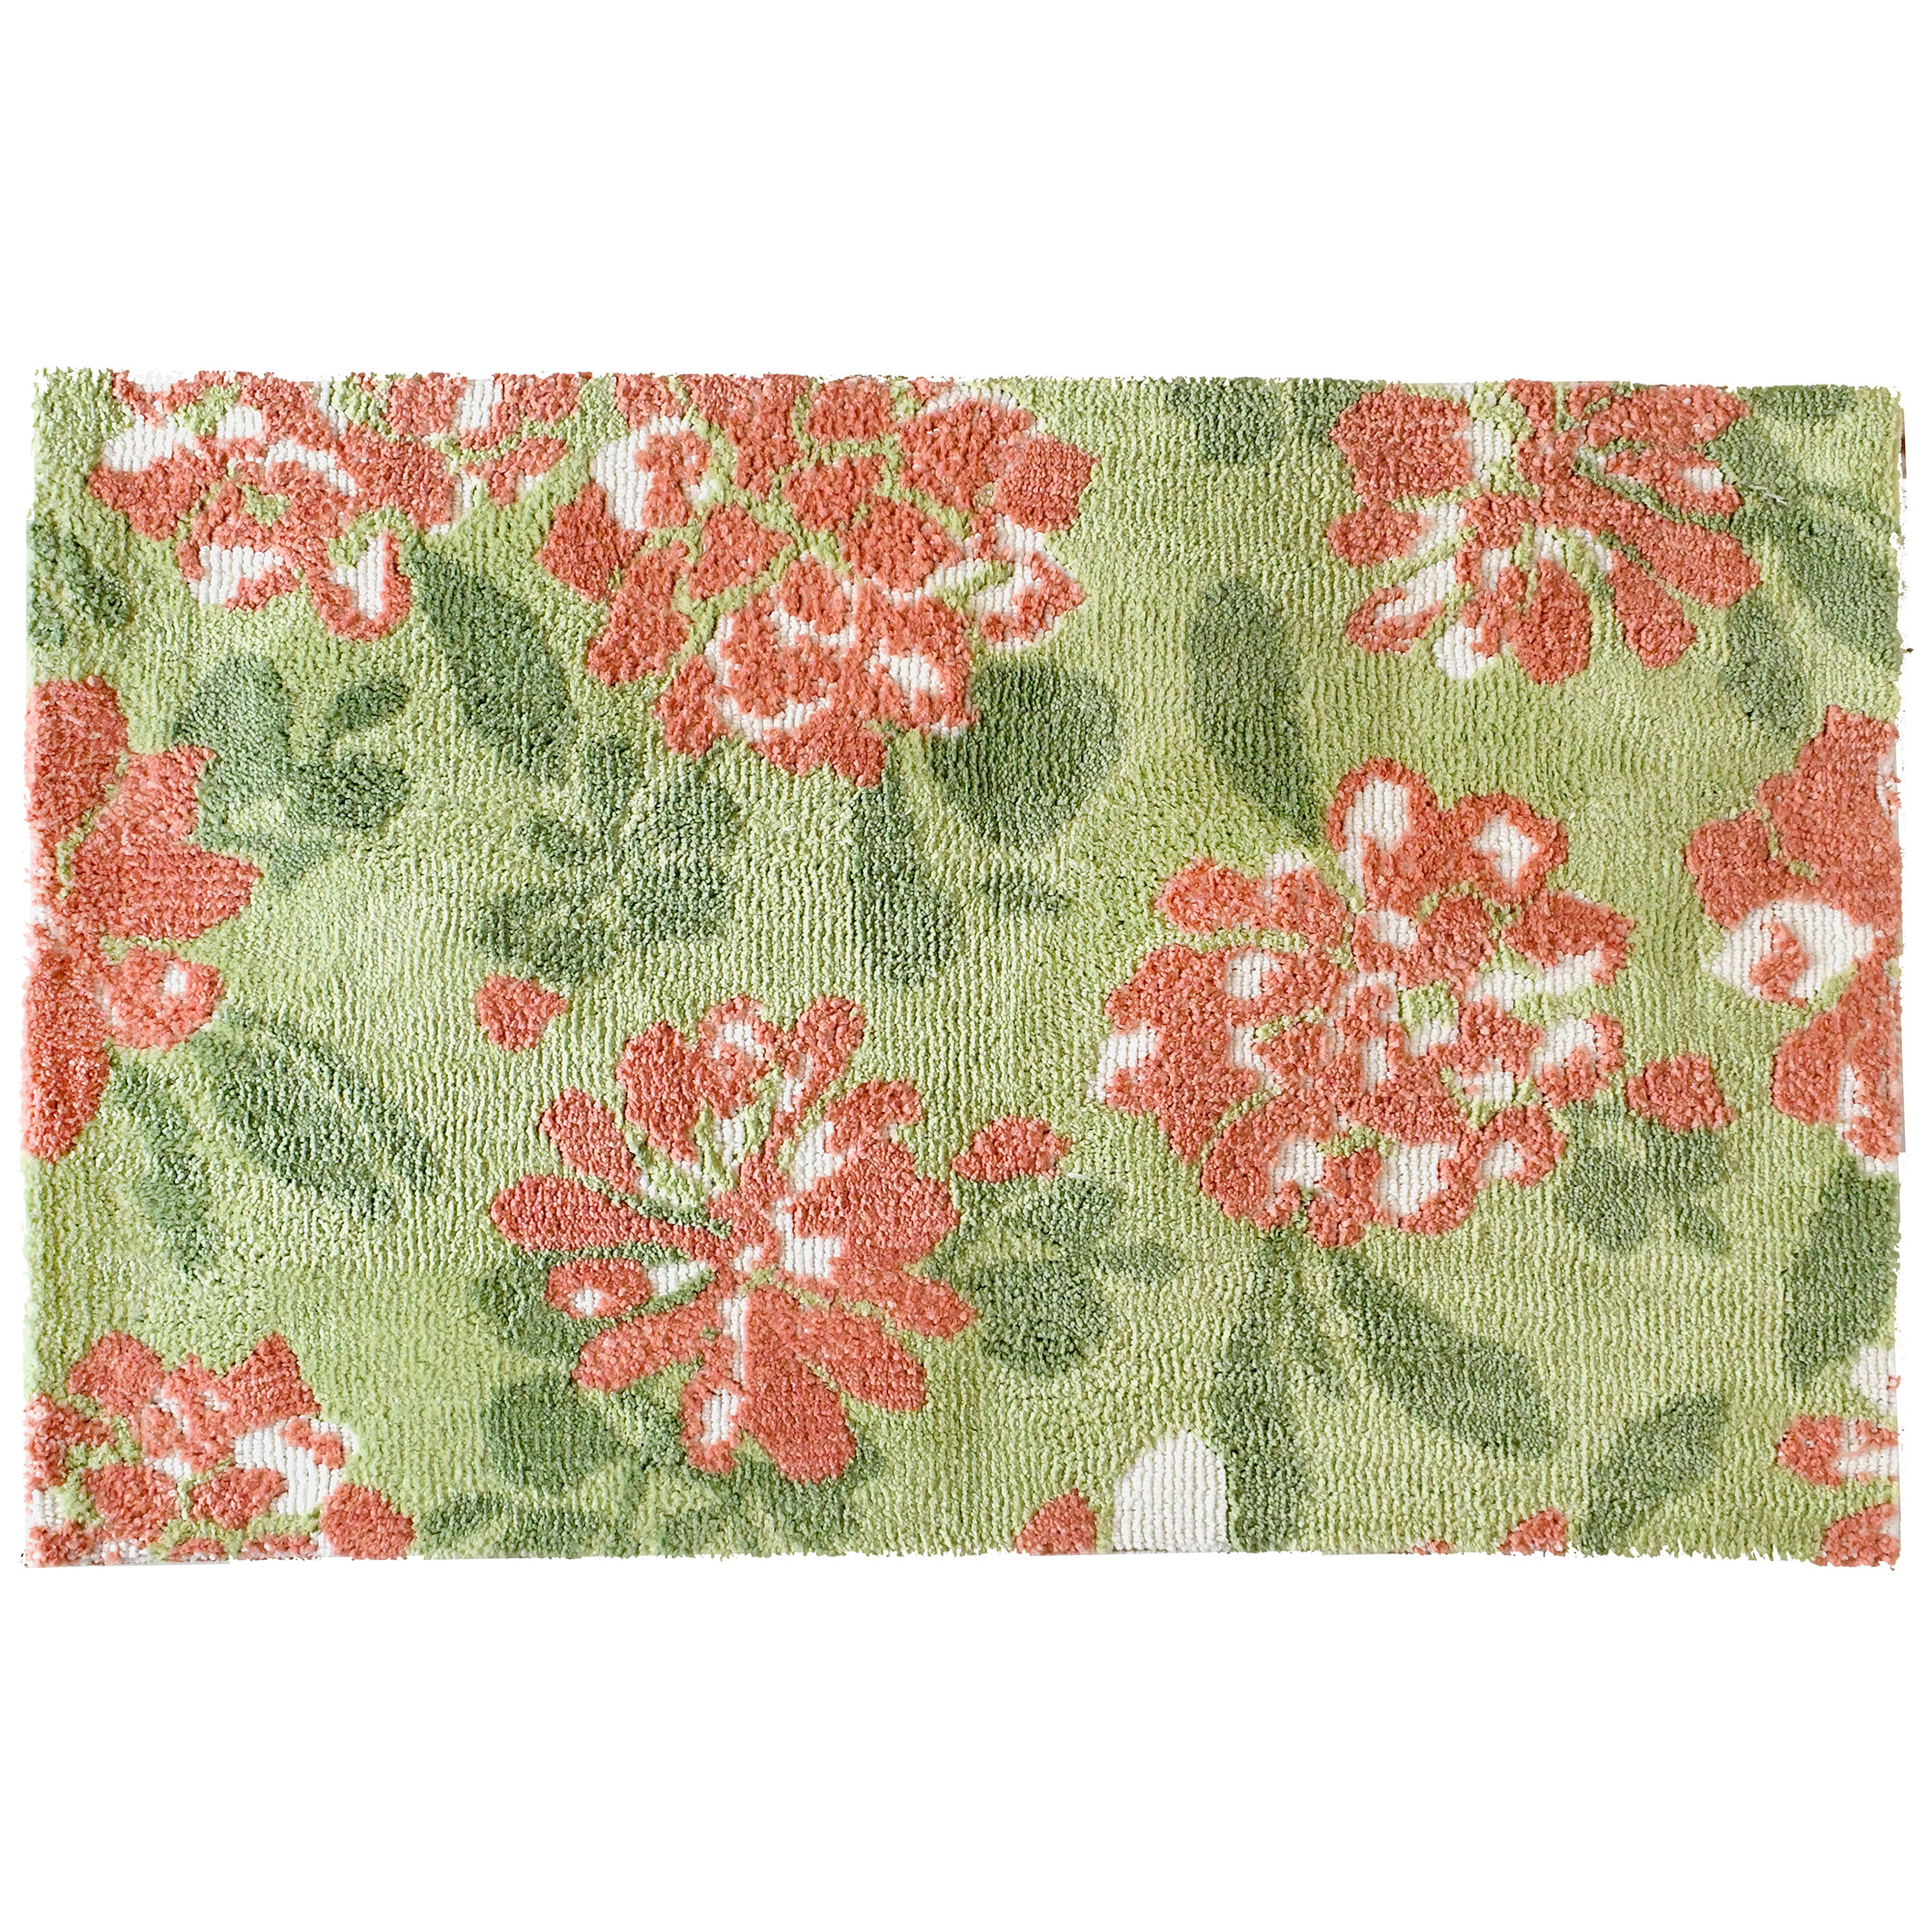 Designer Deane Beasley has captured the essence of a flush garden with full pink blooms on this Simple Spaces by Jellybean® accent rug. Also available in a 21' x 54' sizing, this Simple Spaces by Jellybean® makes a great bath rug.